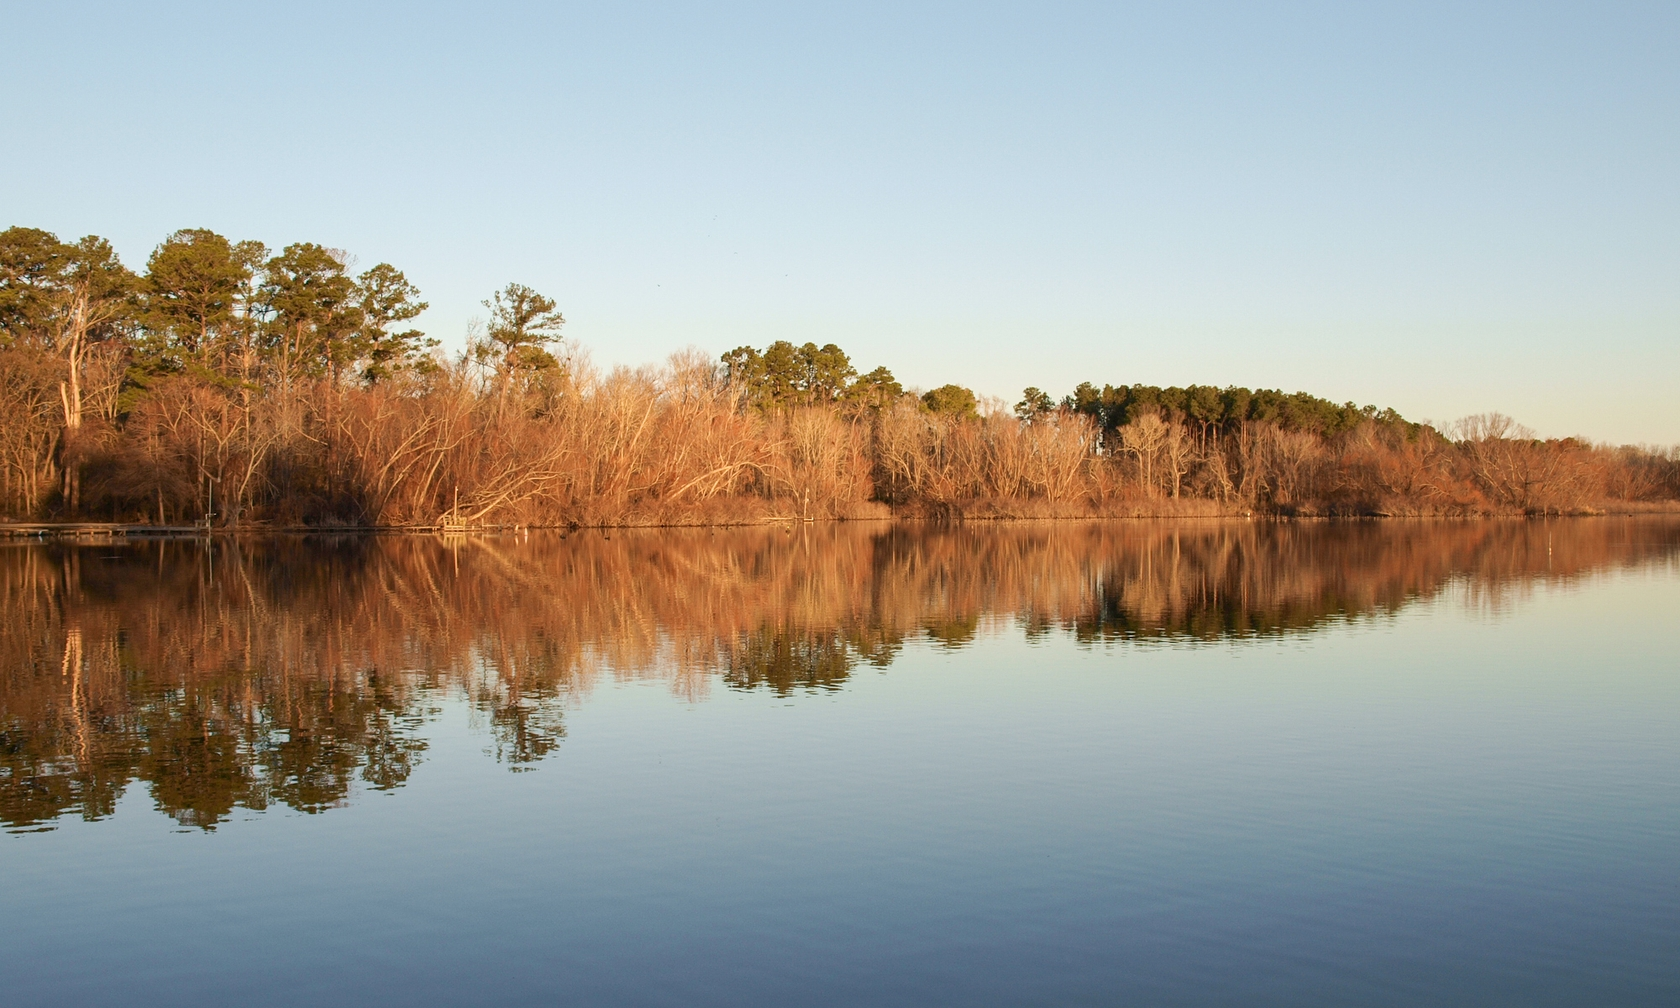 Vacation rentals in Lake Livingston